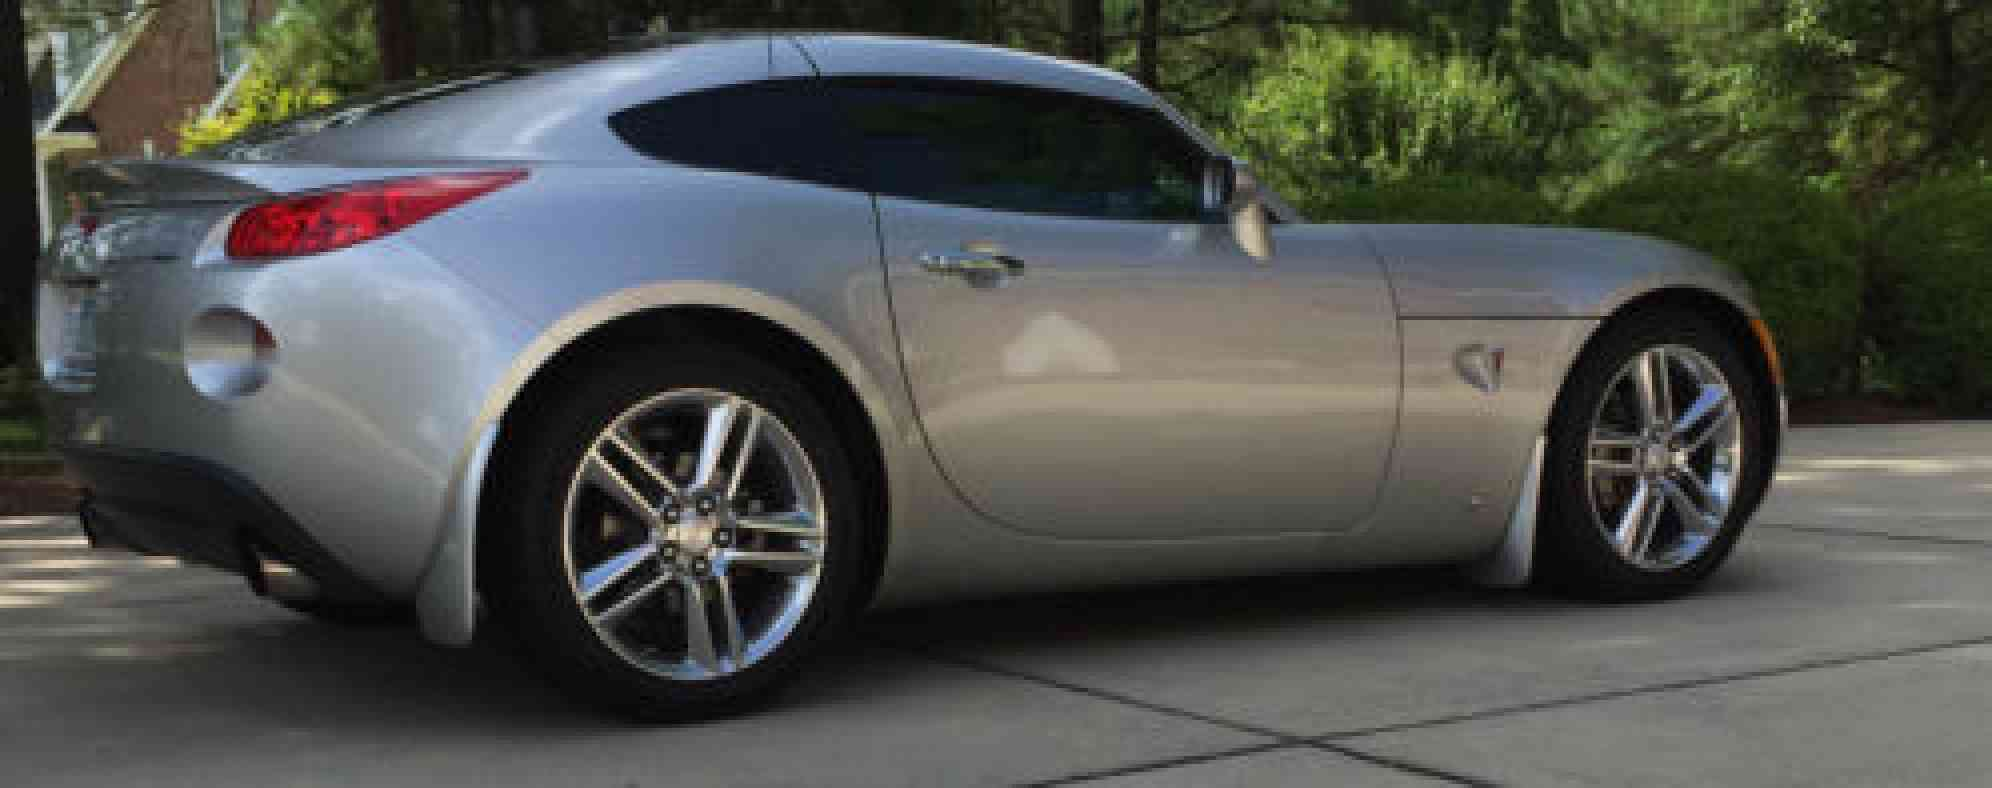 Pontiac Solstice Gxp 2009 Coupe 5 Speed Manual One Owner